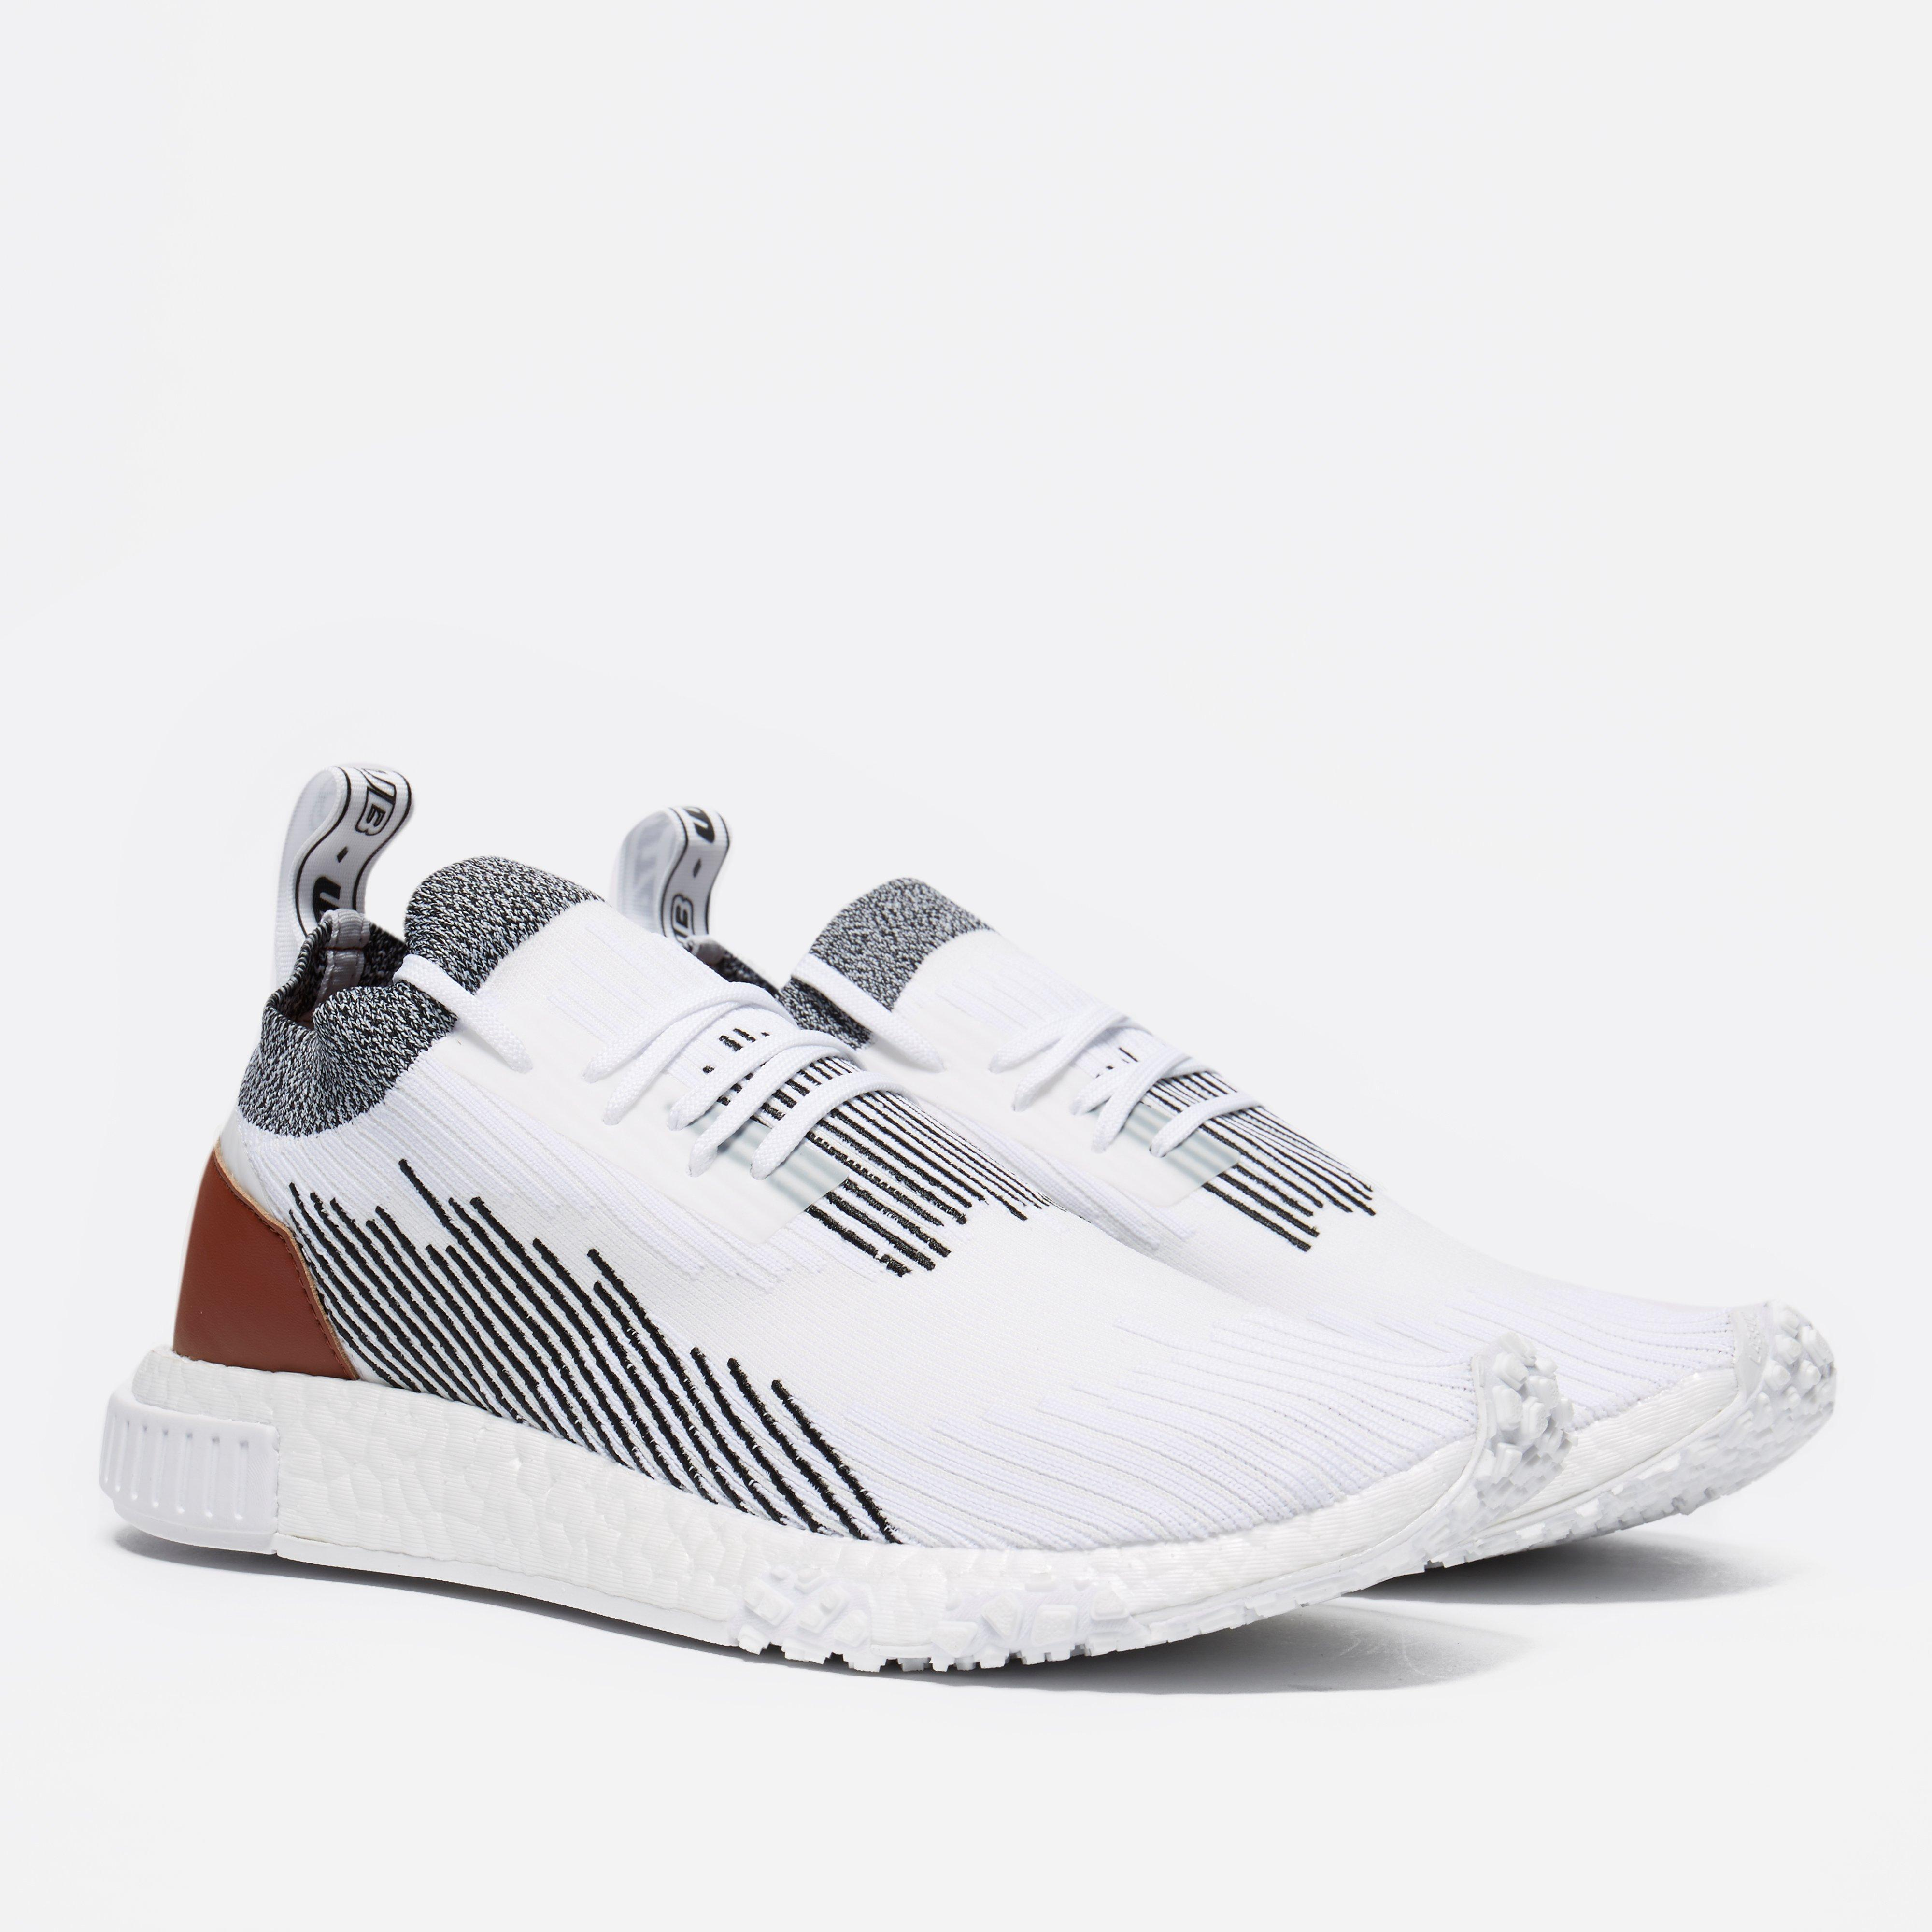 size 40 8d650 4f449 adidas Originals Nmd Racer Pk in White for Men - Lyst